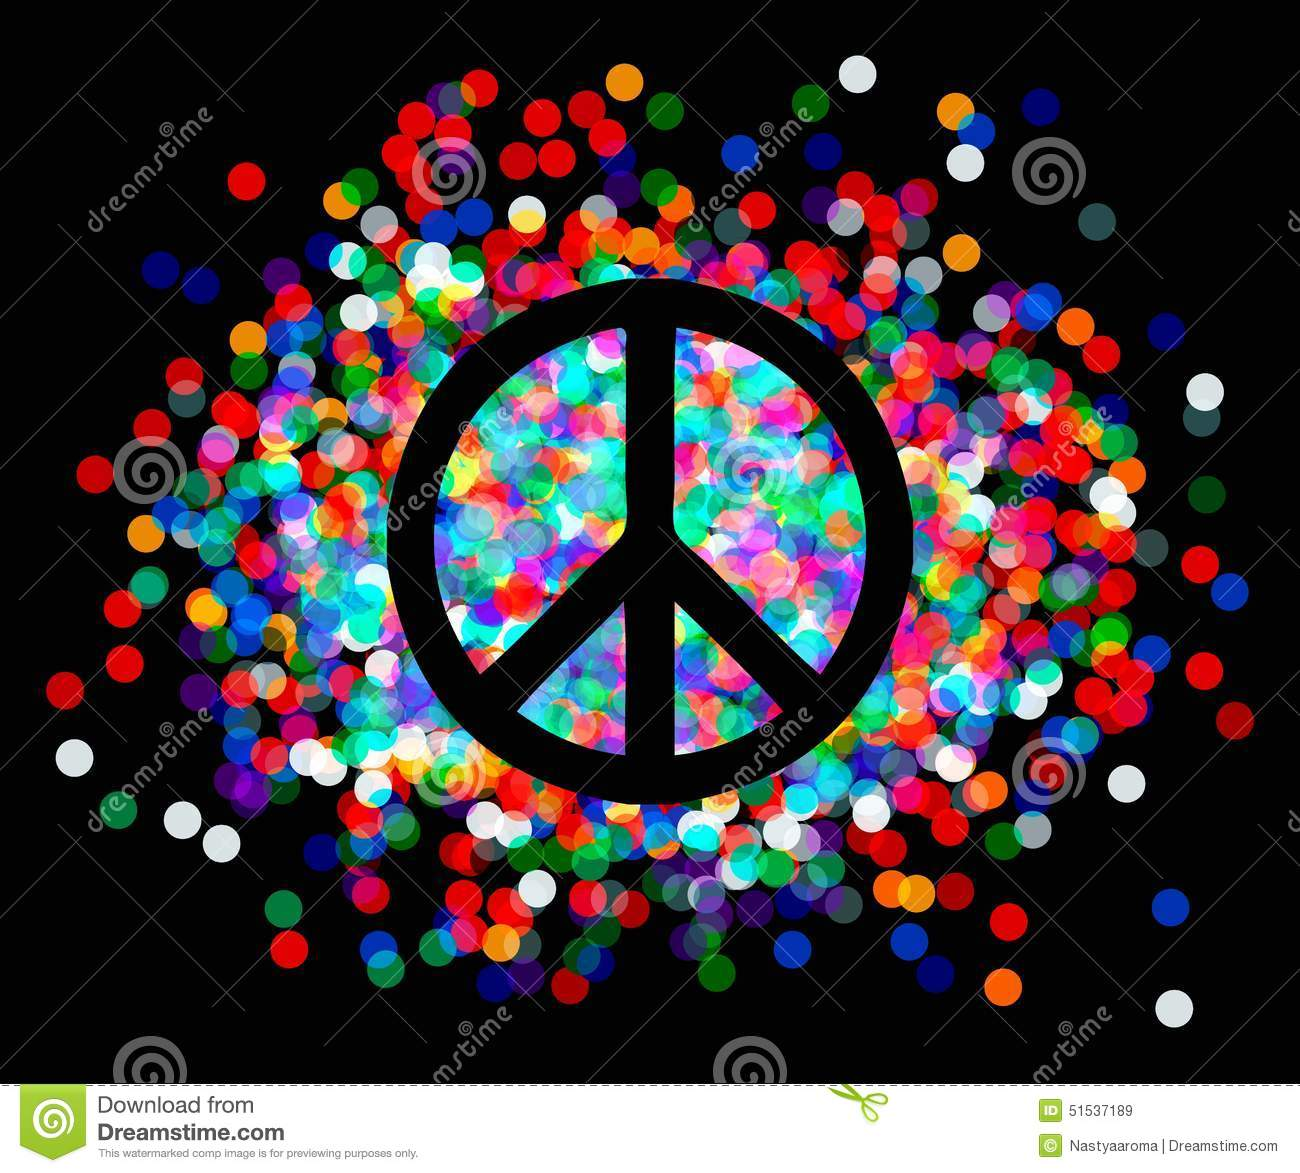 peace sign happy birthday images ; peace-sign-beautiful-symbol-peace-pacifism-51537189